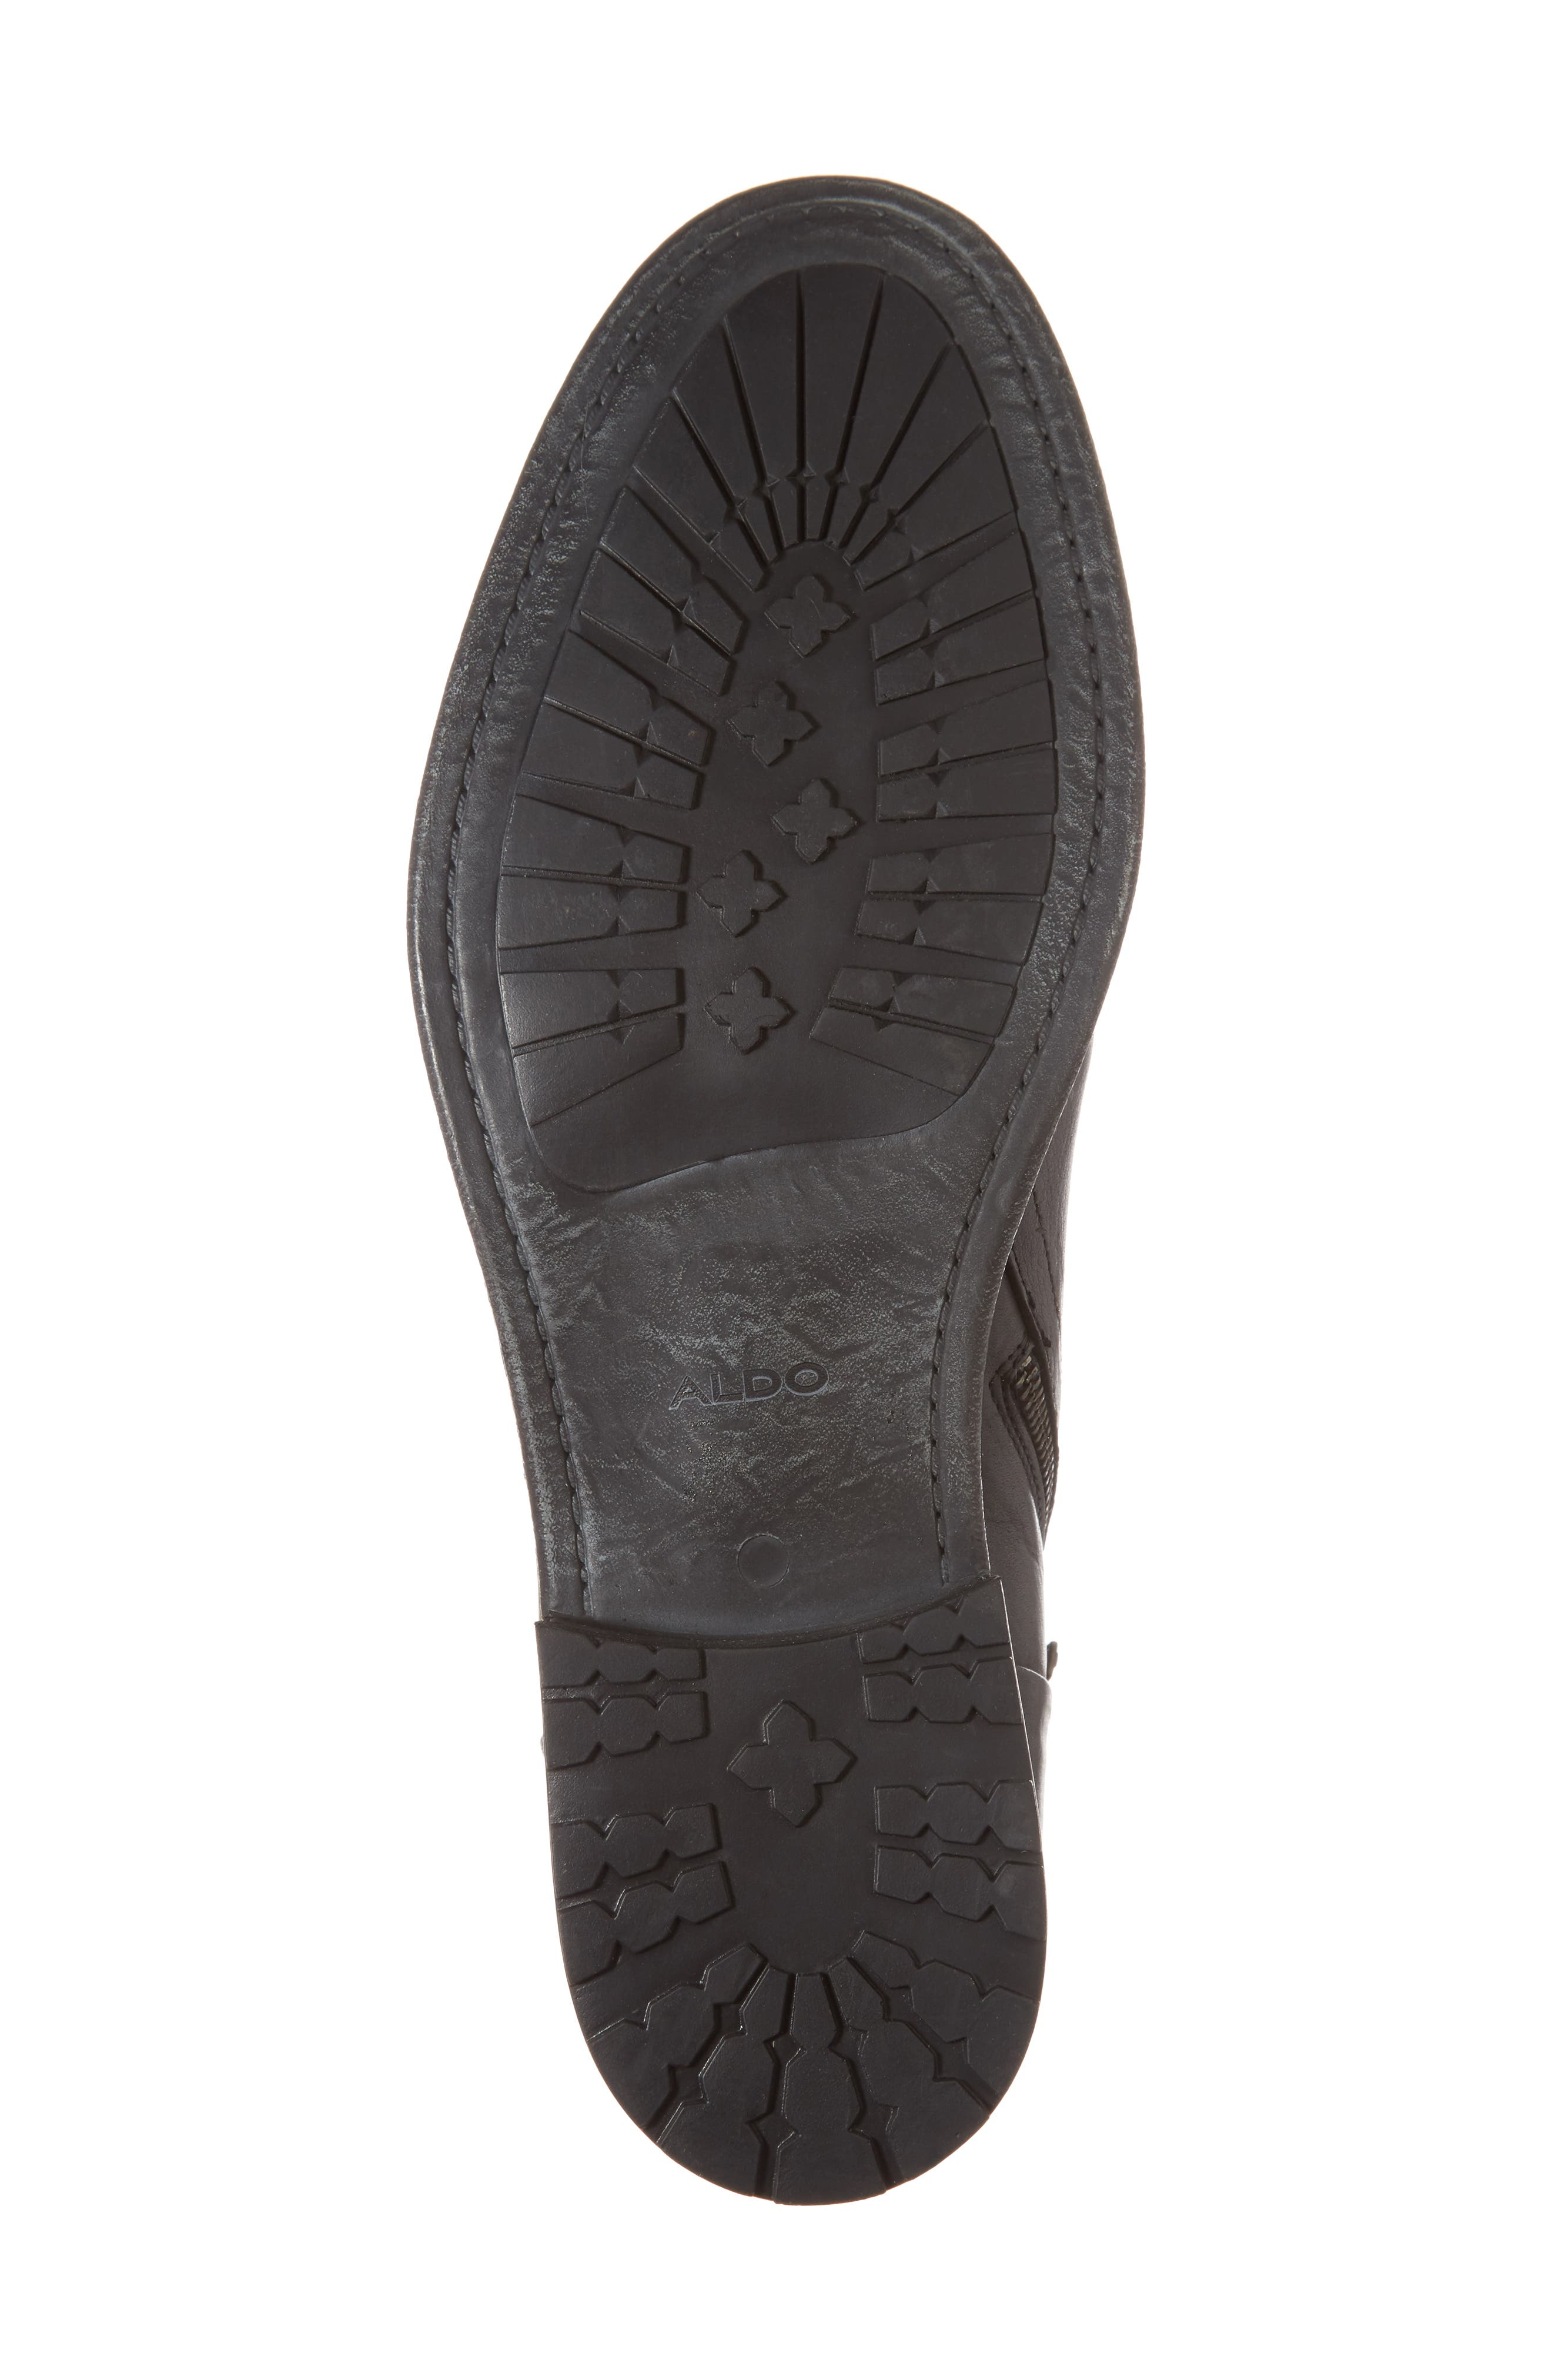 Gerone Zip Boot,                             Alternate thumbnail 6, color,                             Black Leather Fabric